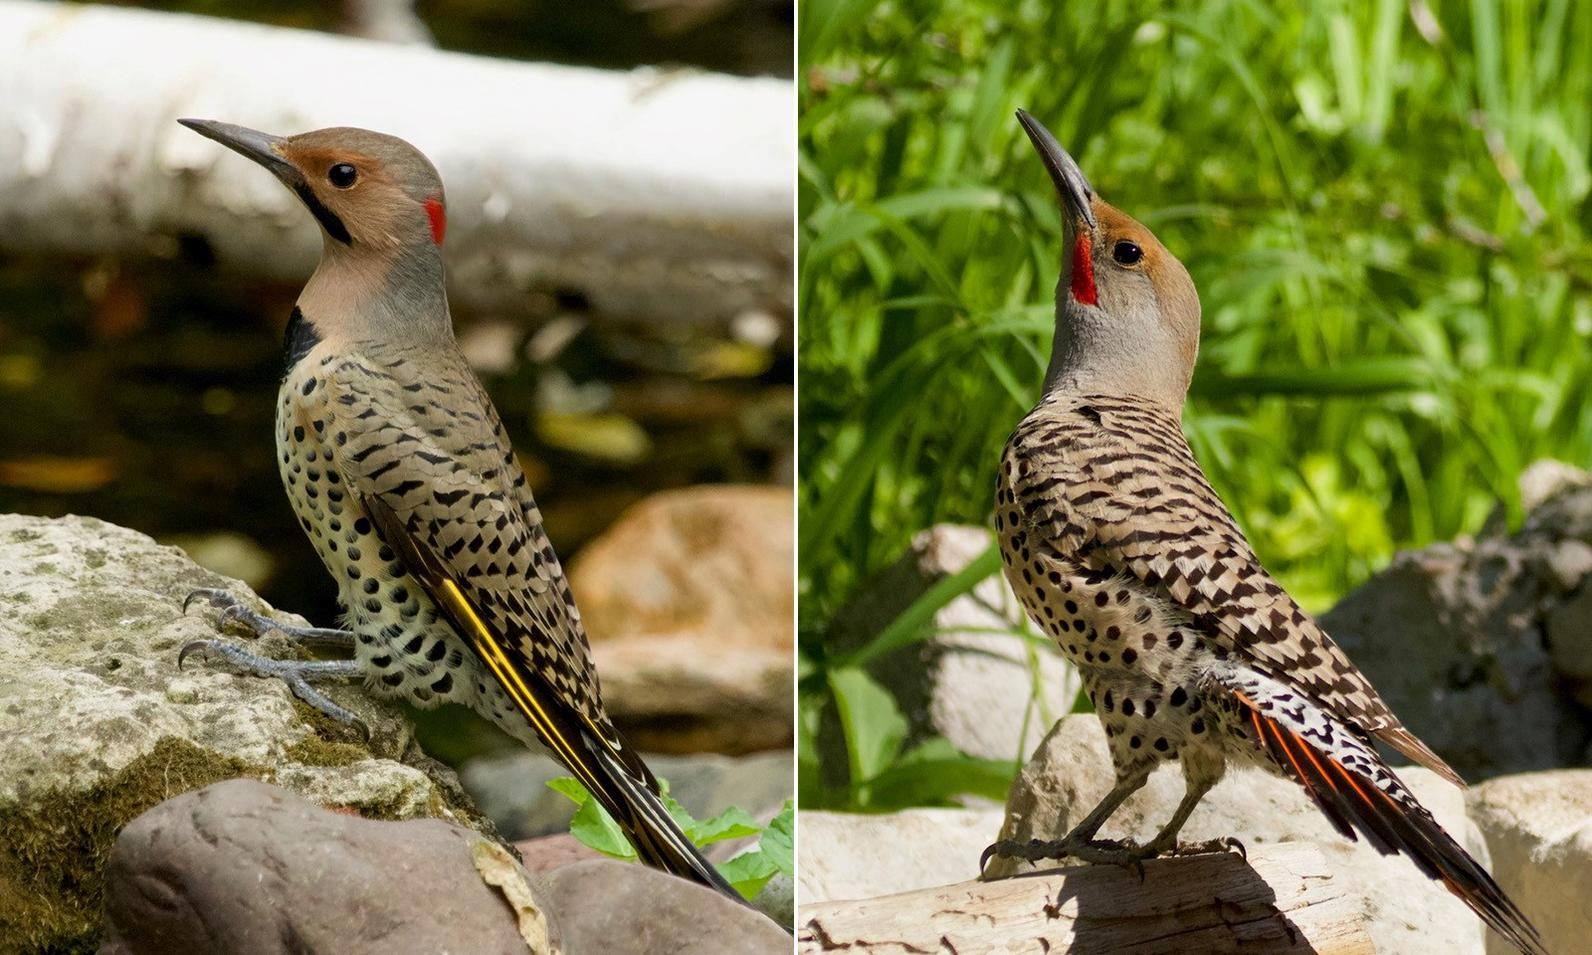 Yellow-shafted Flicker left, Red-shafted Flicker right